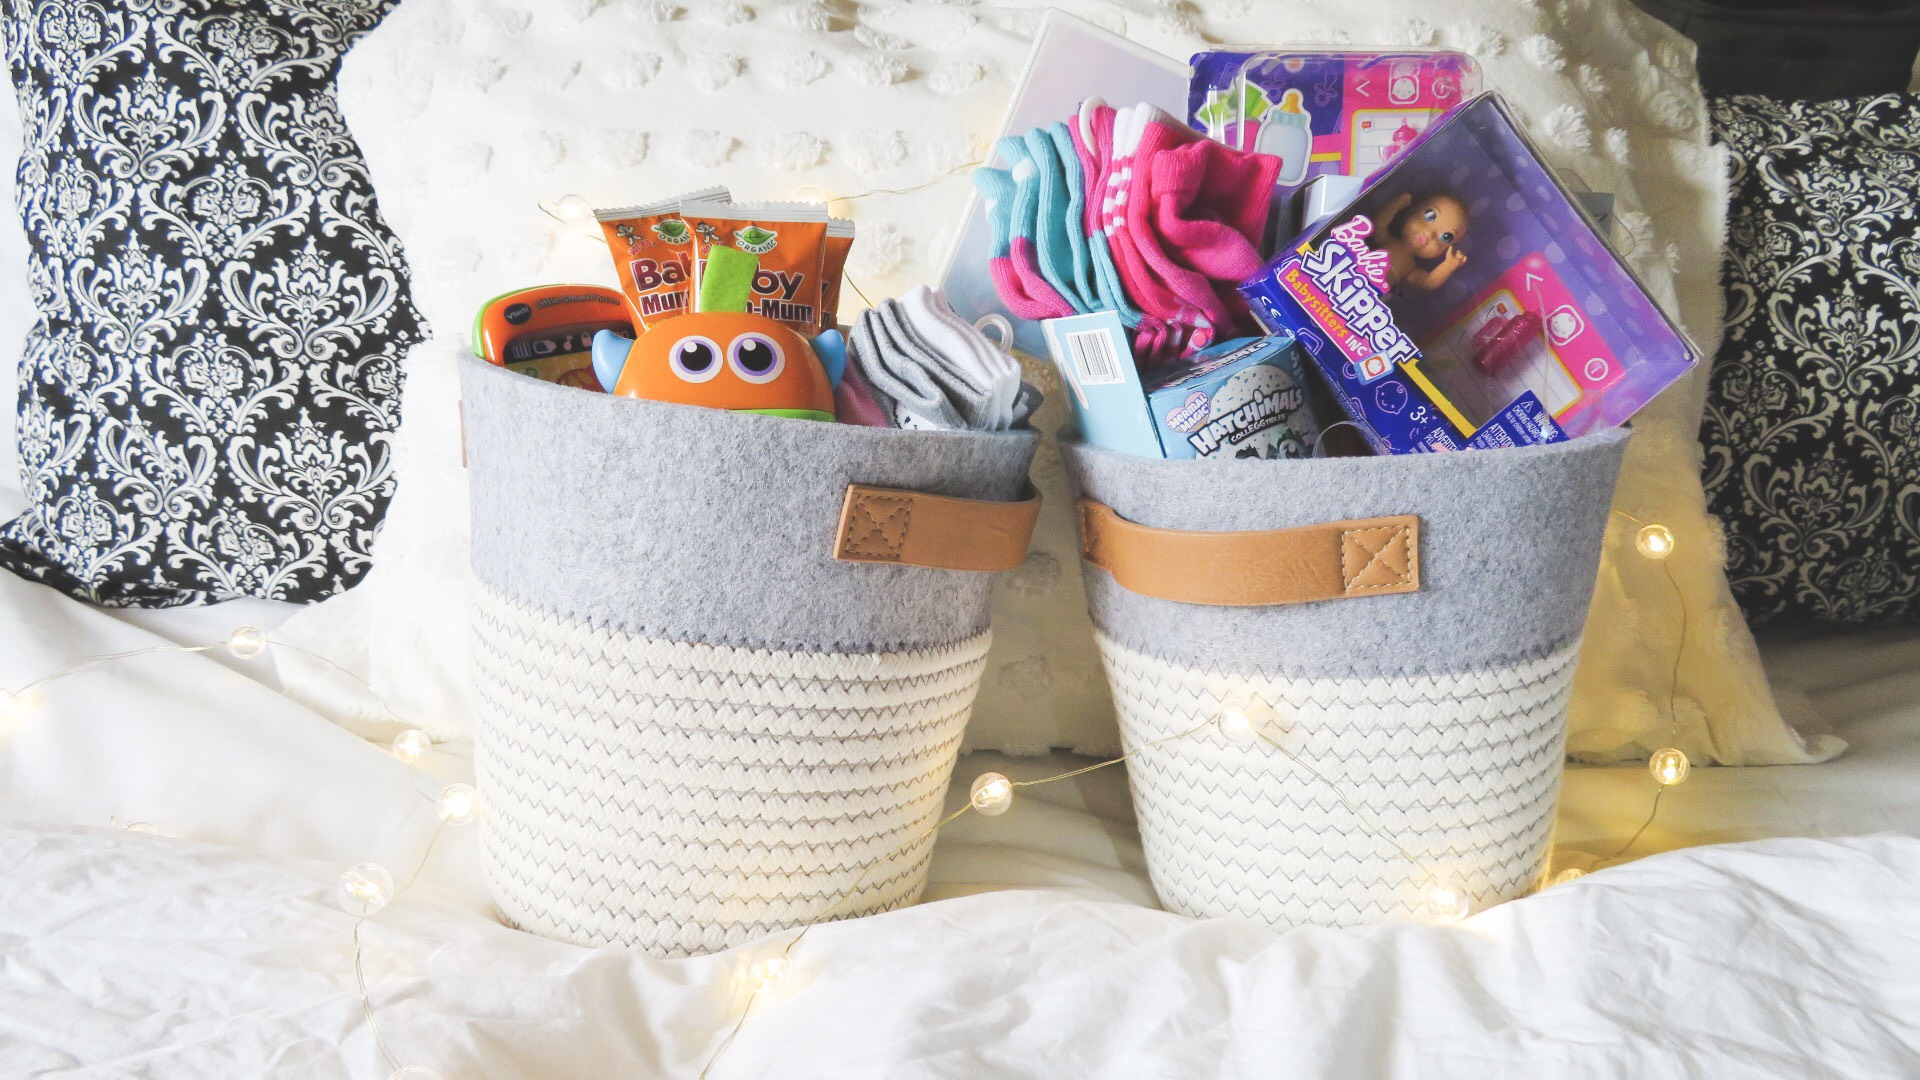 easter baskets for sisters, two easter baskets for a baby and a preschooler, two easter baskets with decorative baskets from target, new socks, fisher price monster toy, toy phone, snacks, no candy easter basket ideas, barbie dolls, new movie